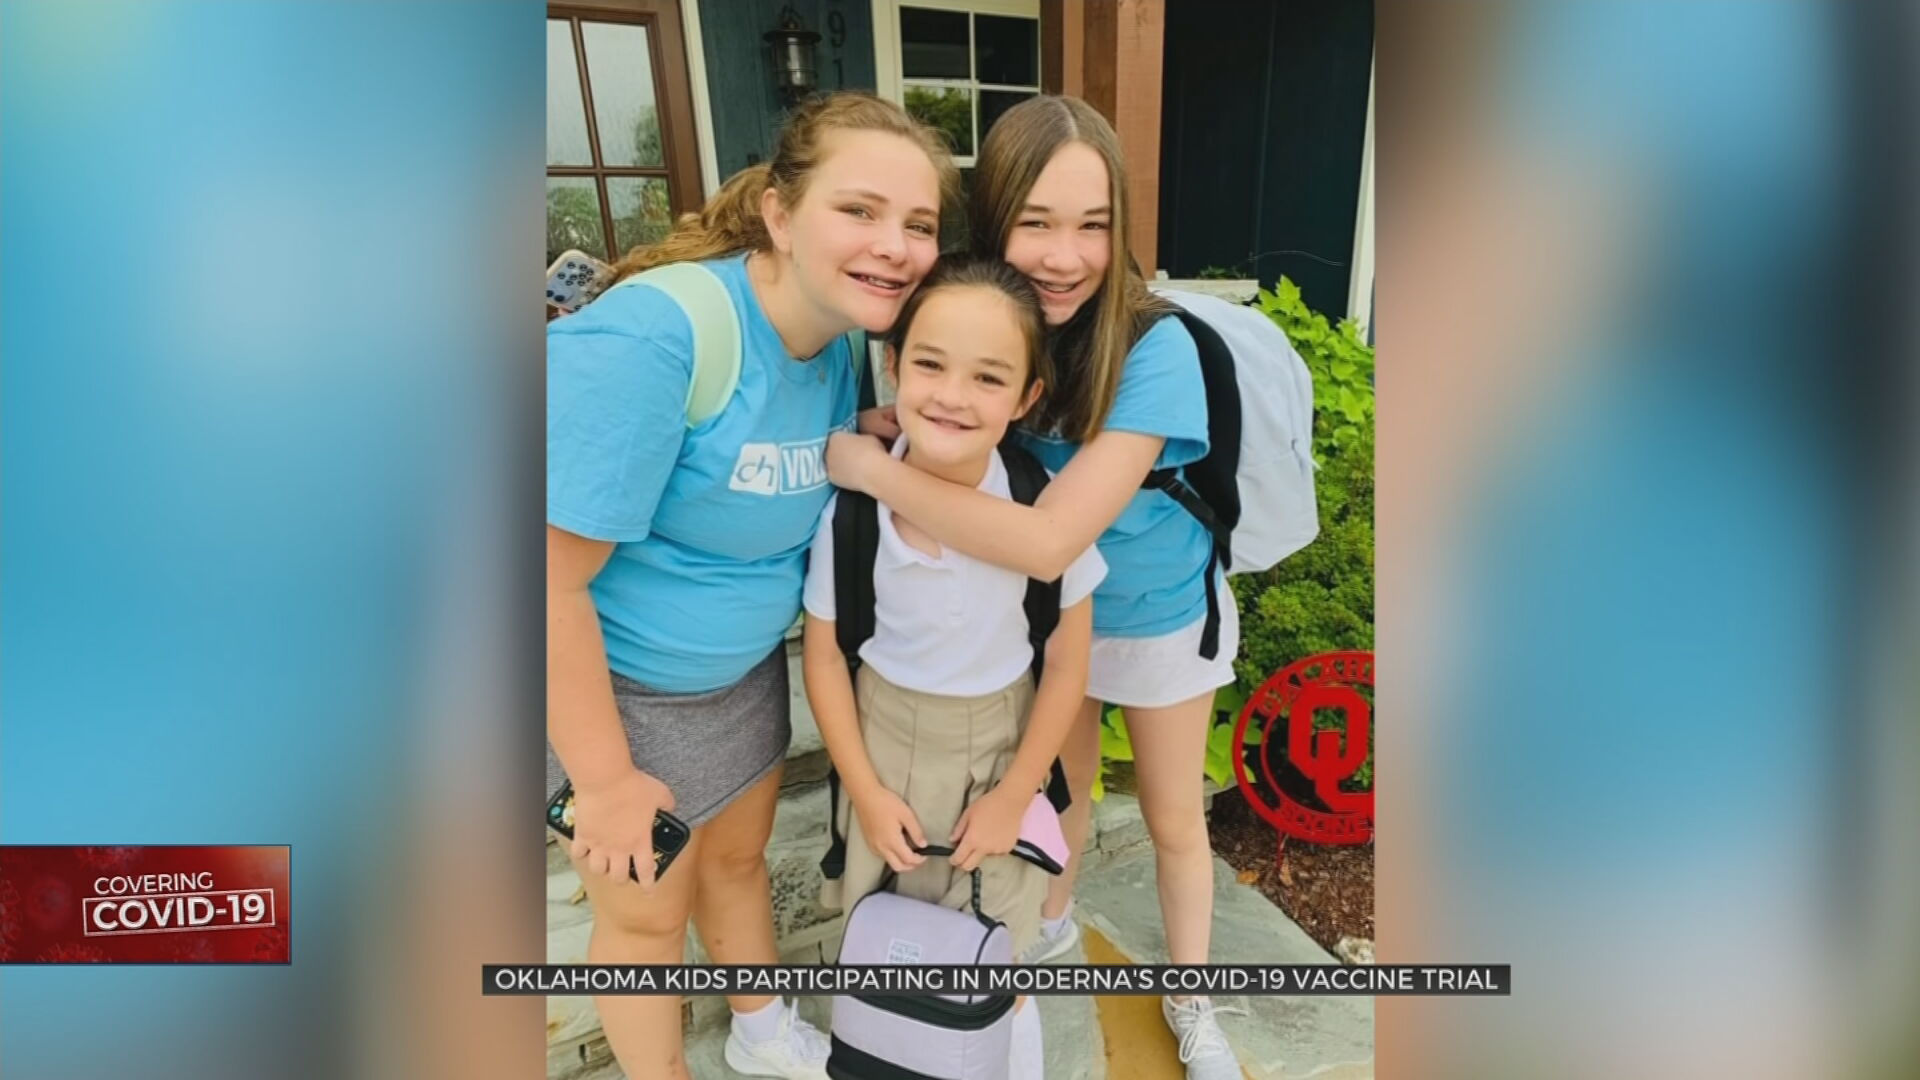 'I Thought It Was Important': Oklahoma Kids Taking Part In COVID-19 Vaccine Trial